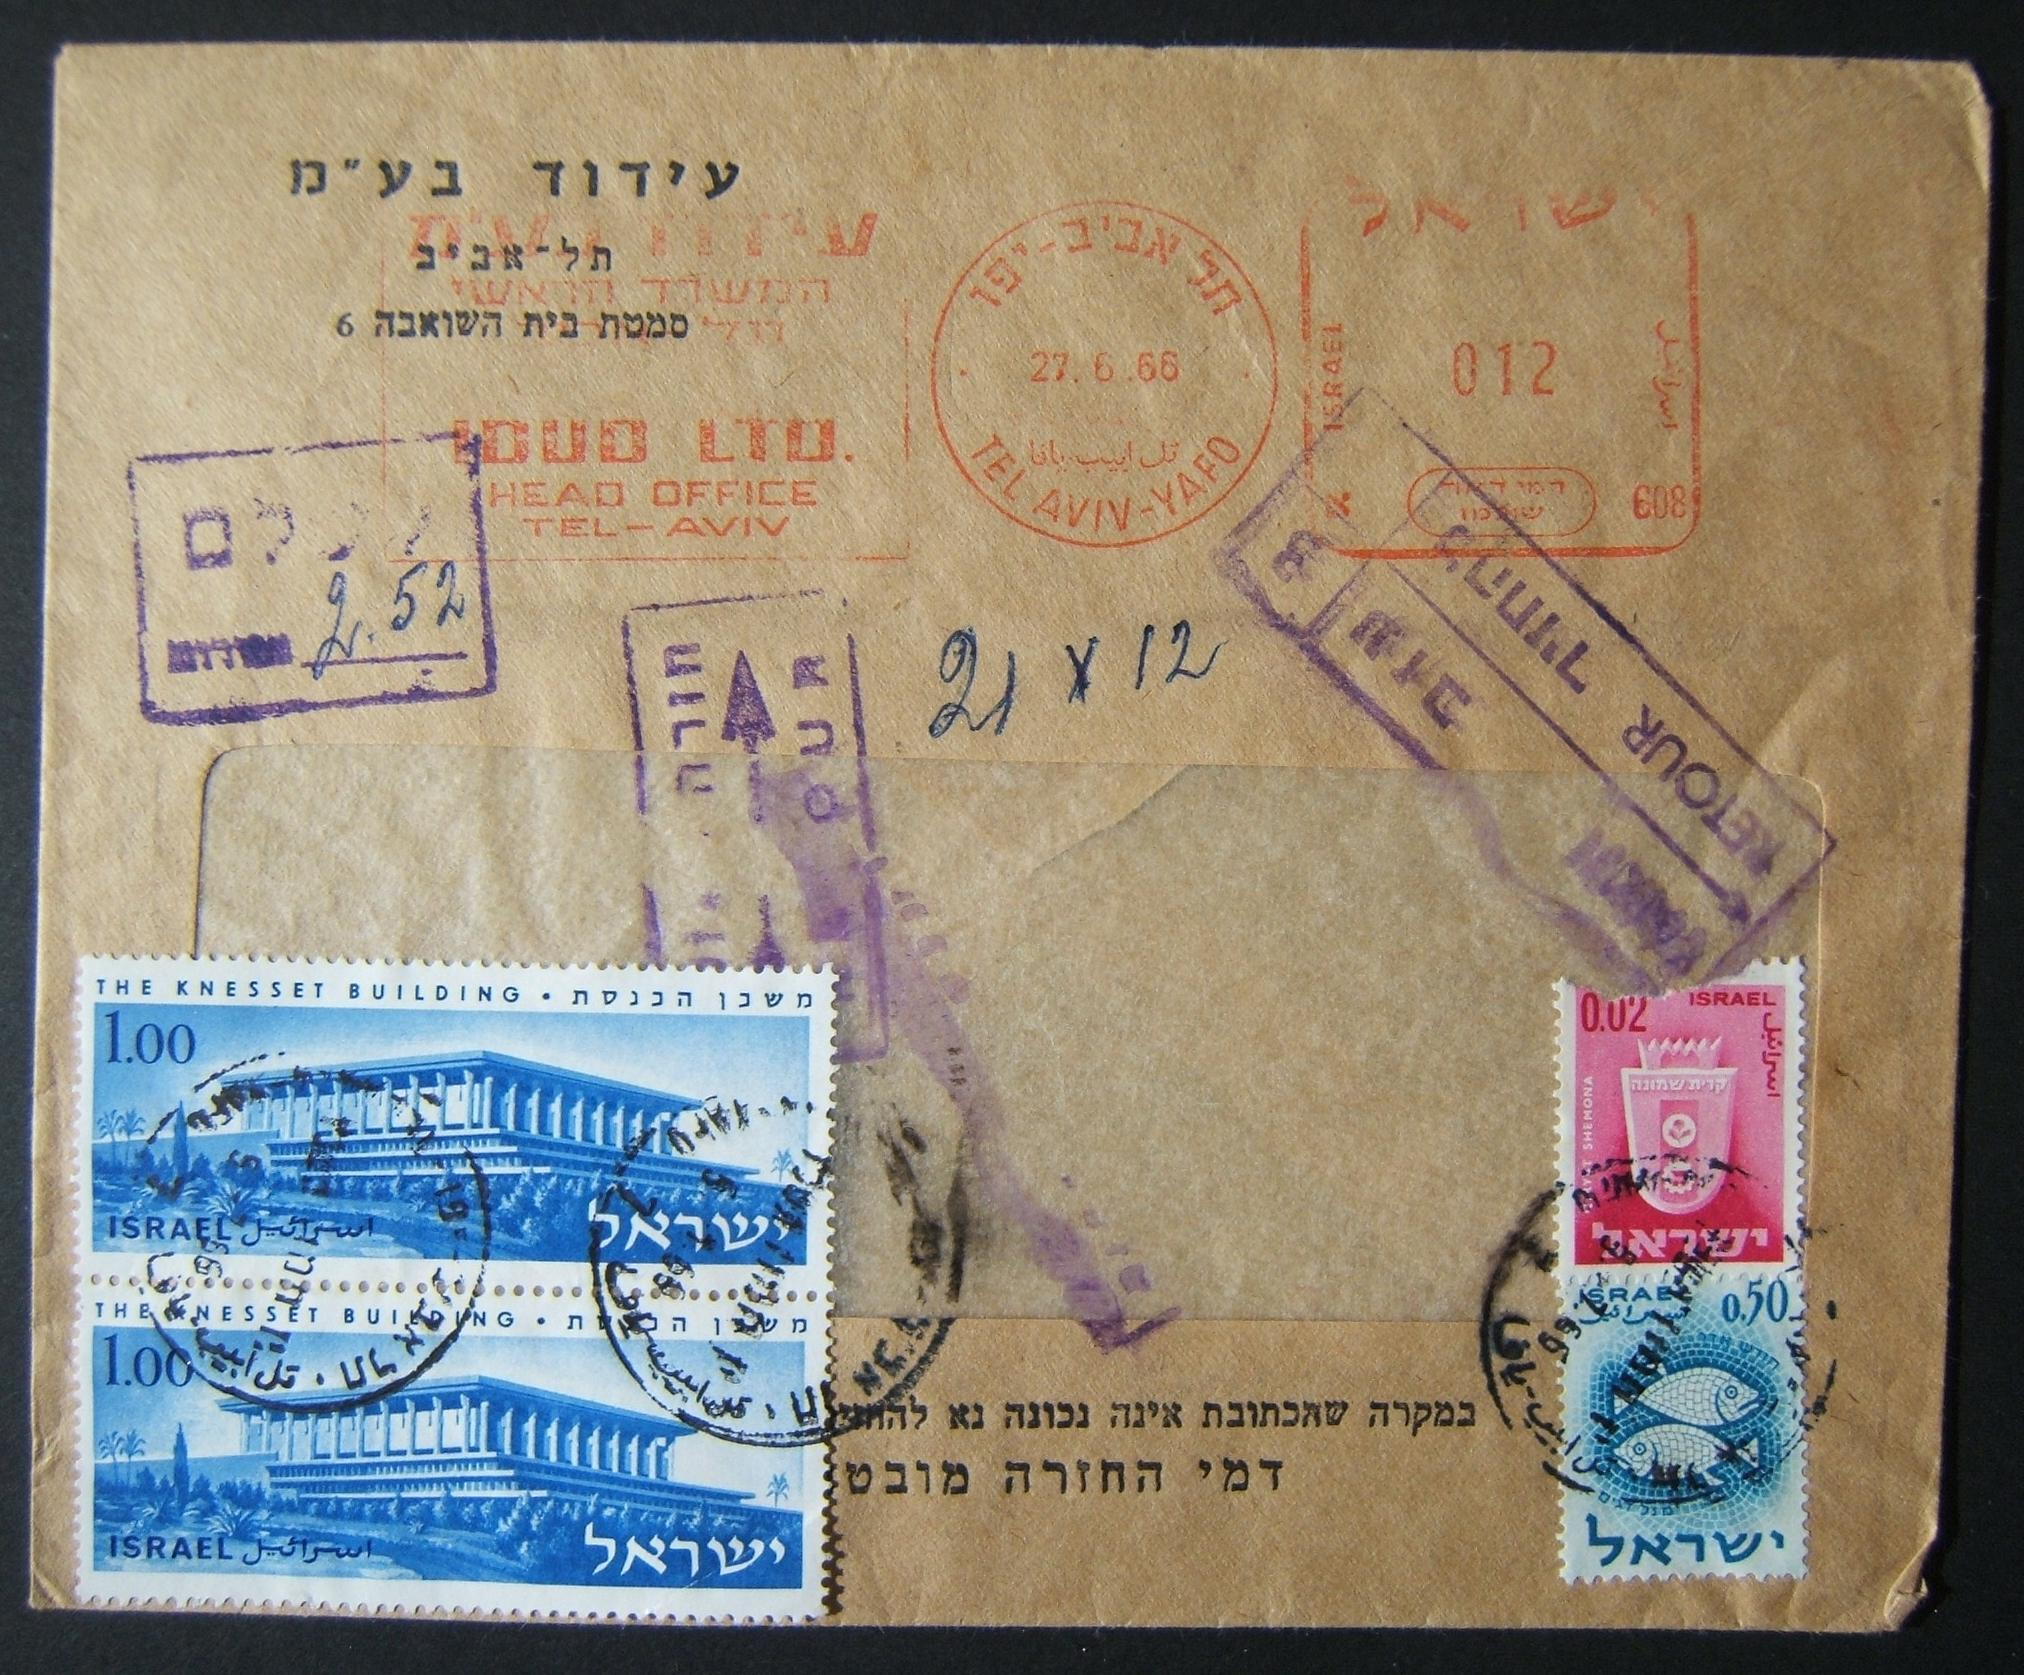 1966 domestic 'top of the pile' taxed franking: 27-6-66 printed matter commercial cover ex TLV branch of Idud Ltd. franked by meter payment at the DO-12 period 12 Ag PM rate but re